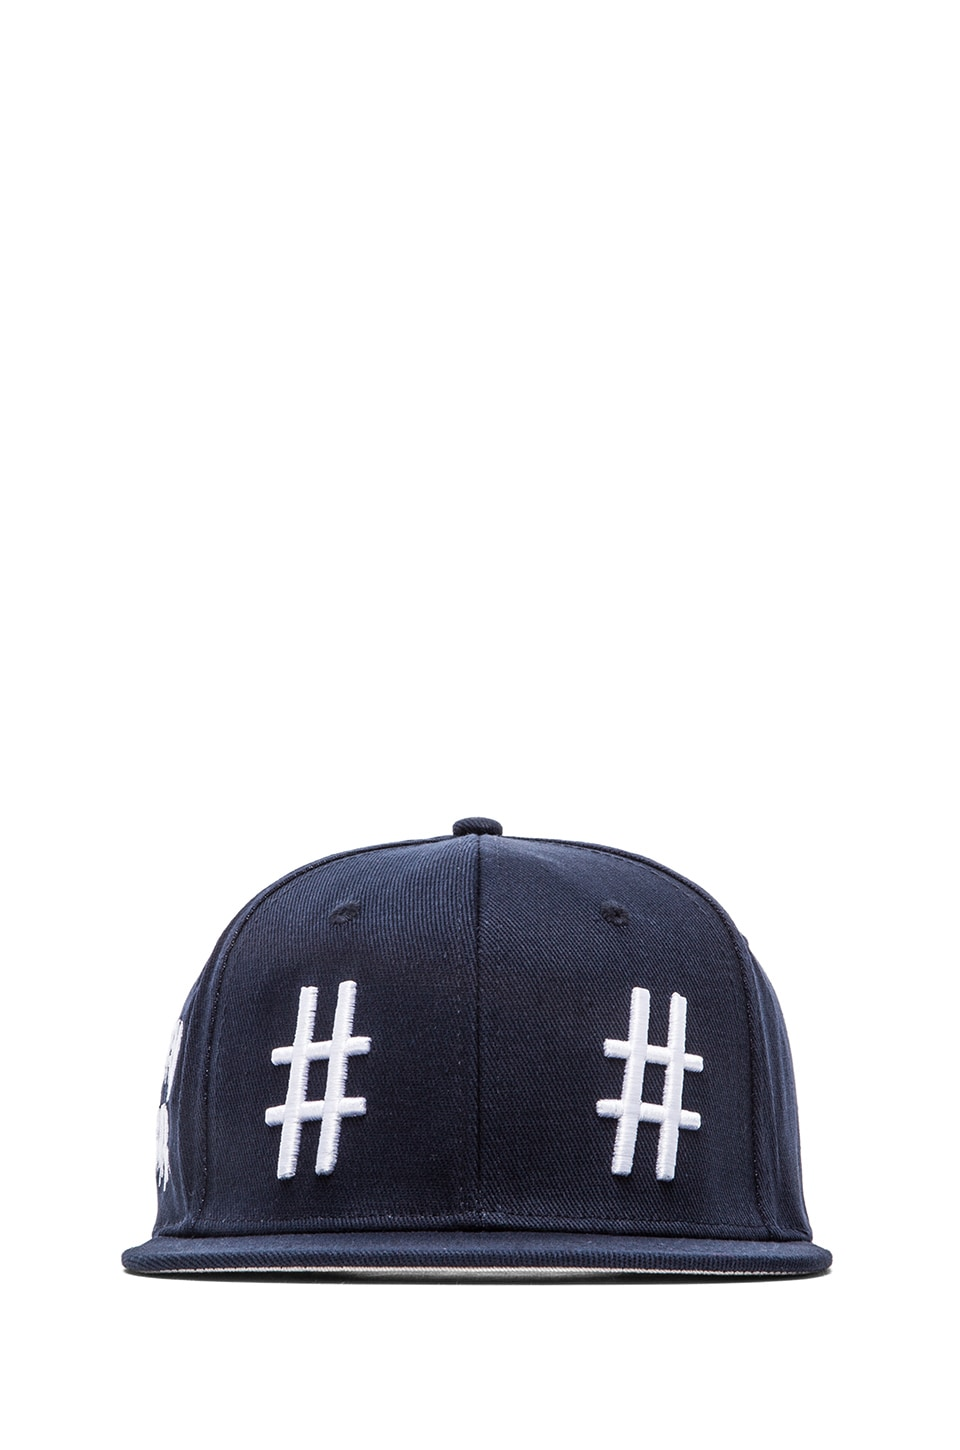 Been Trill Team Hat in Navy and White